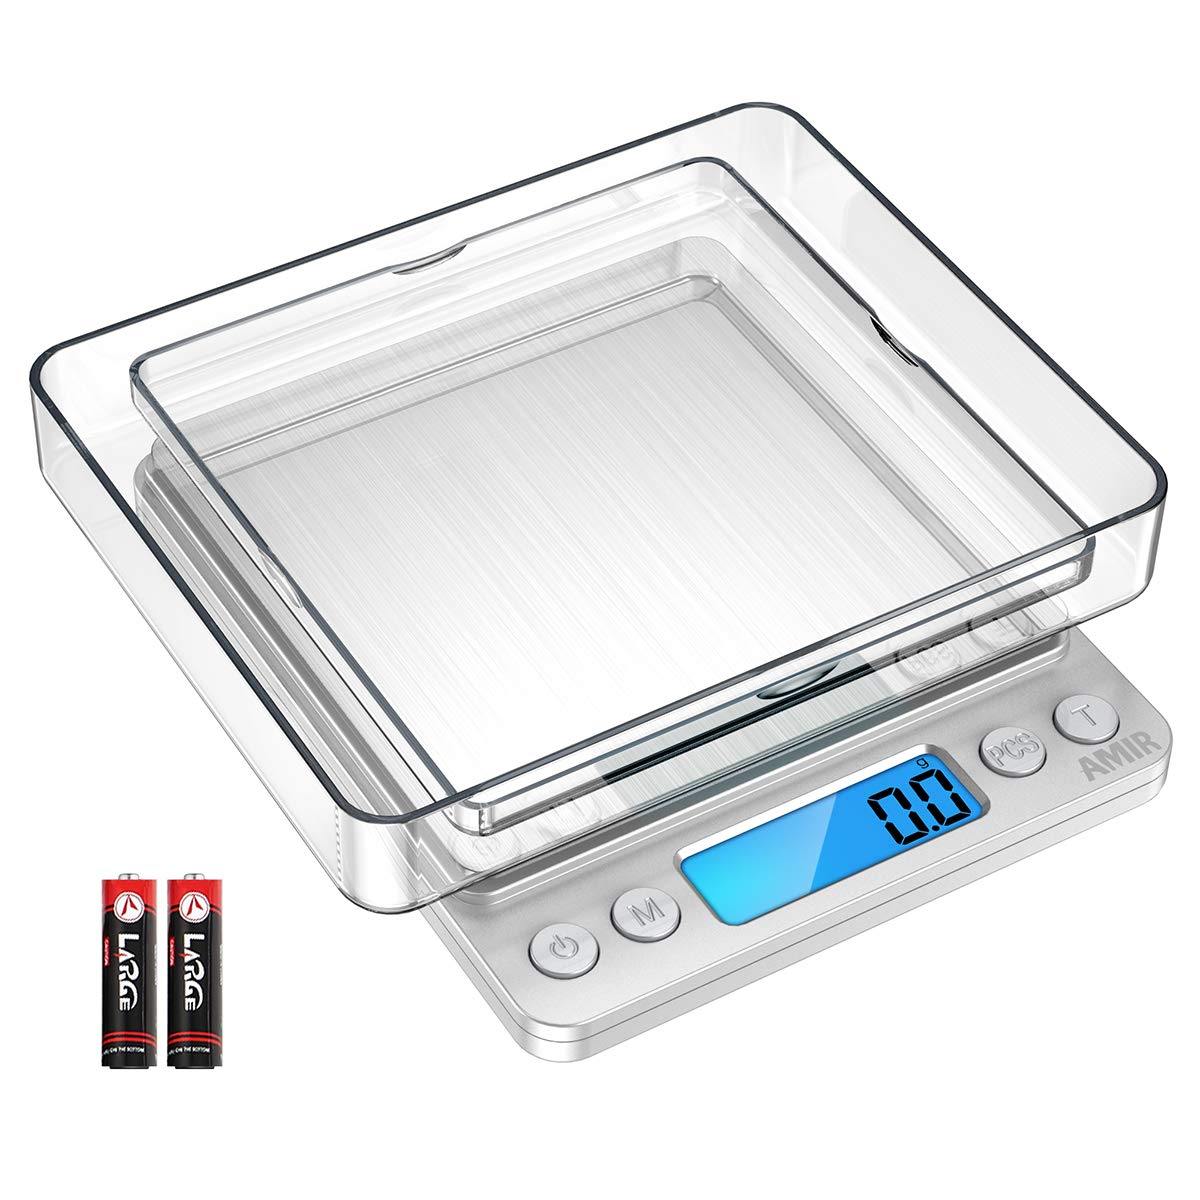 Digital Kitchen Scales, (3kg, 0.1g) Mini Food Scales, Electric Cooking Scales with 2 Trays, Back-Lit LCD Display, Tare and PCS Features, for Ingredients, Jewelry, Coffee